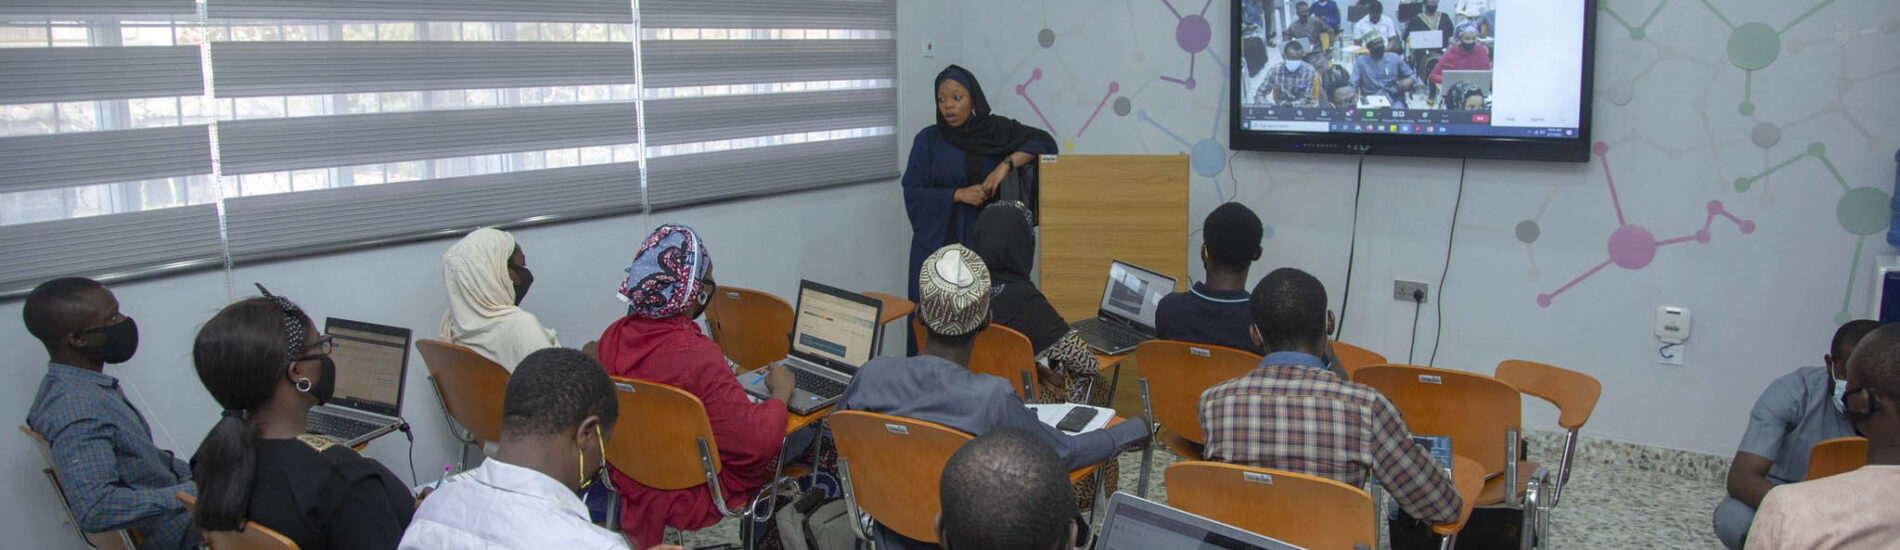 Halita Digital Skills Academy is a pioneer in digital marketing education in Abuja, Nigeria